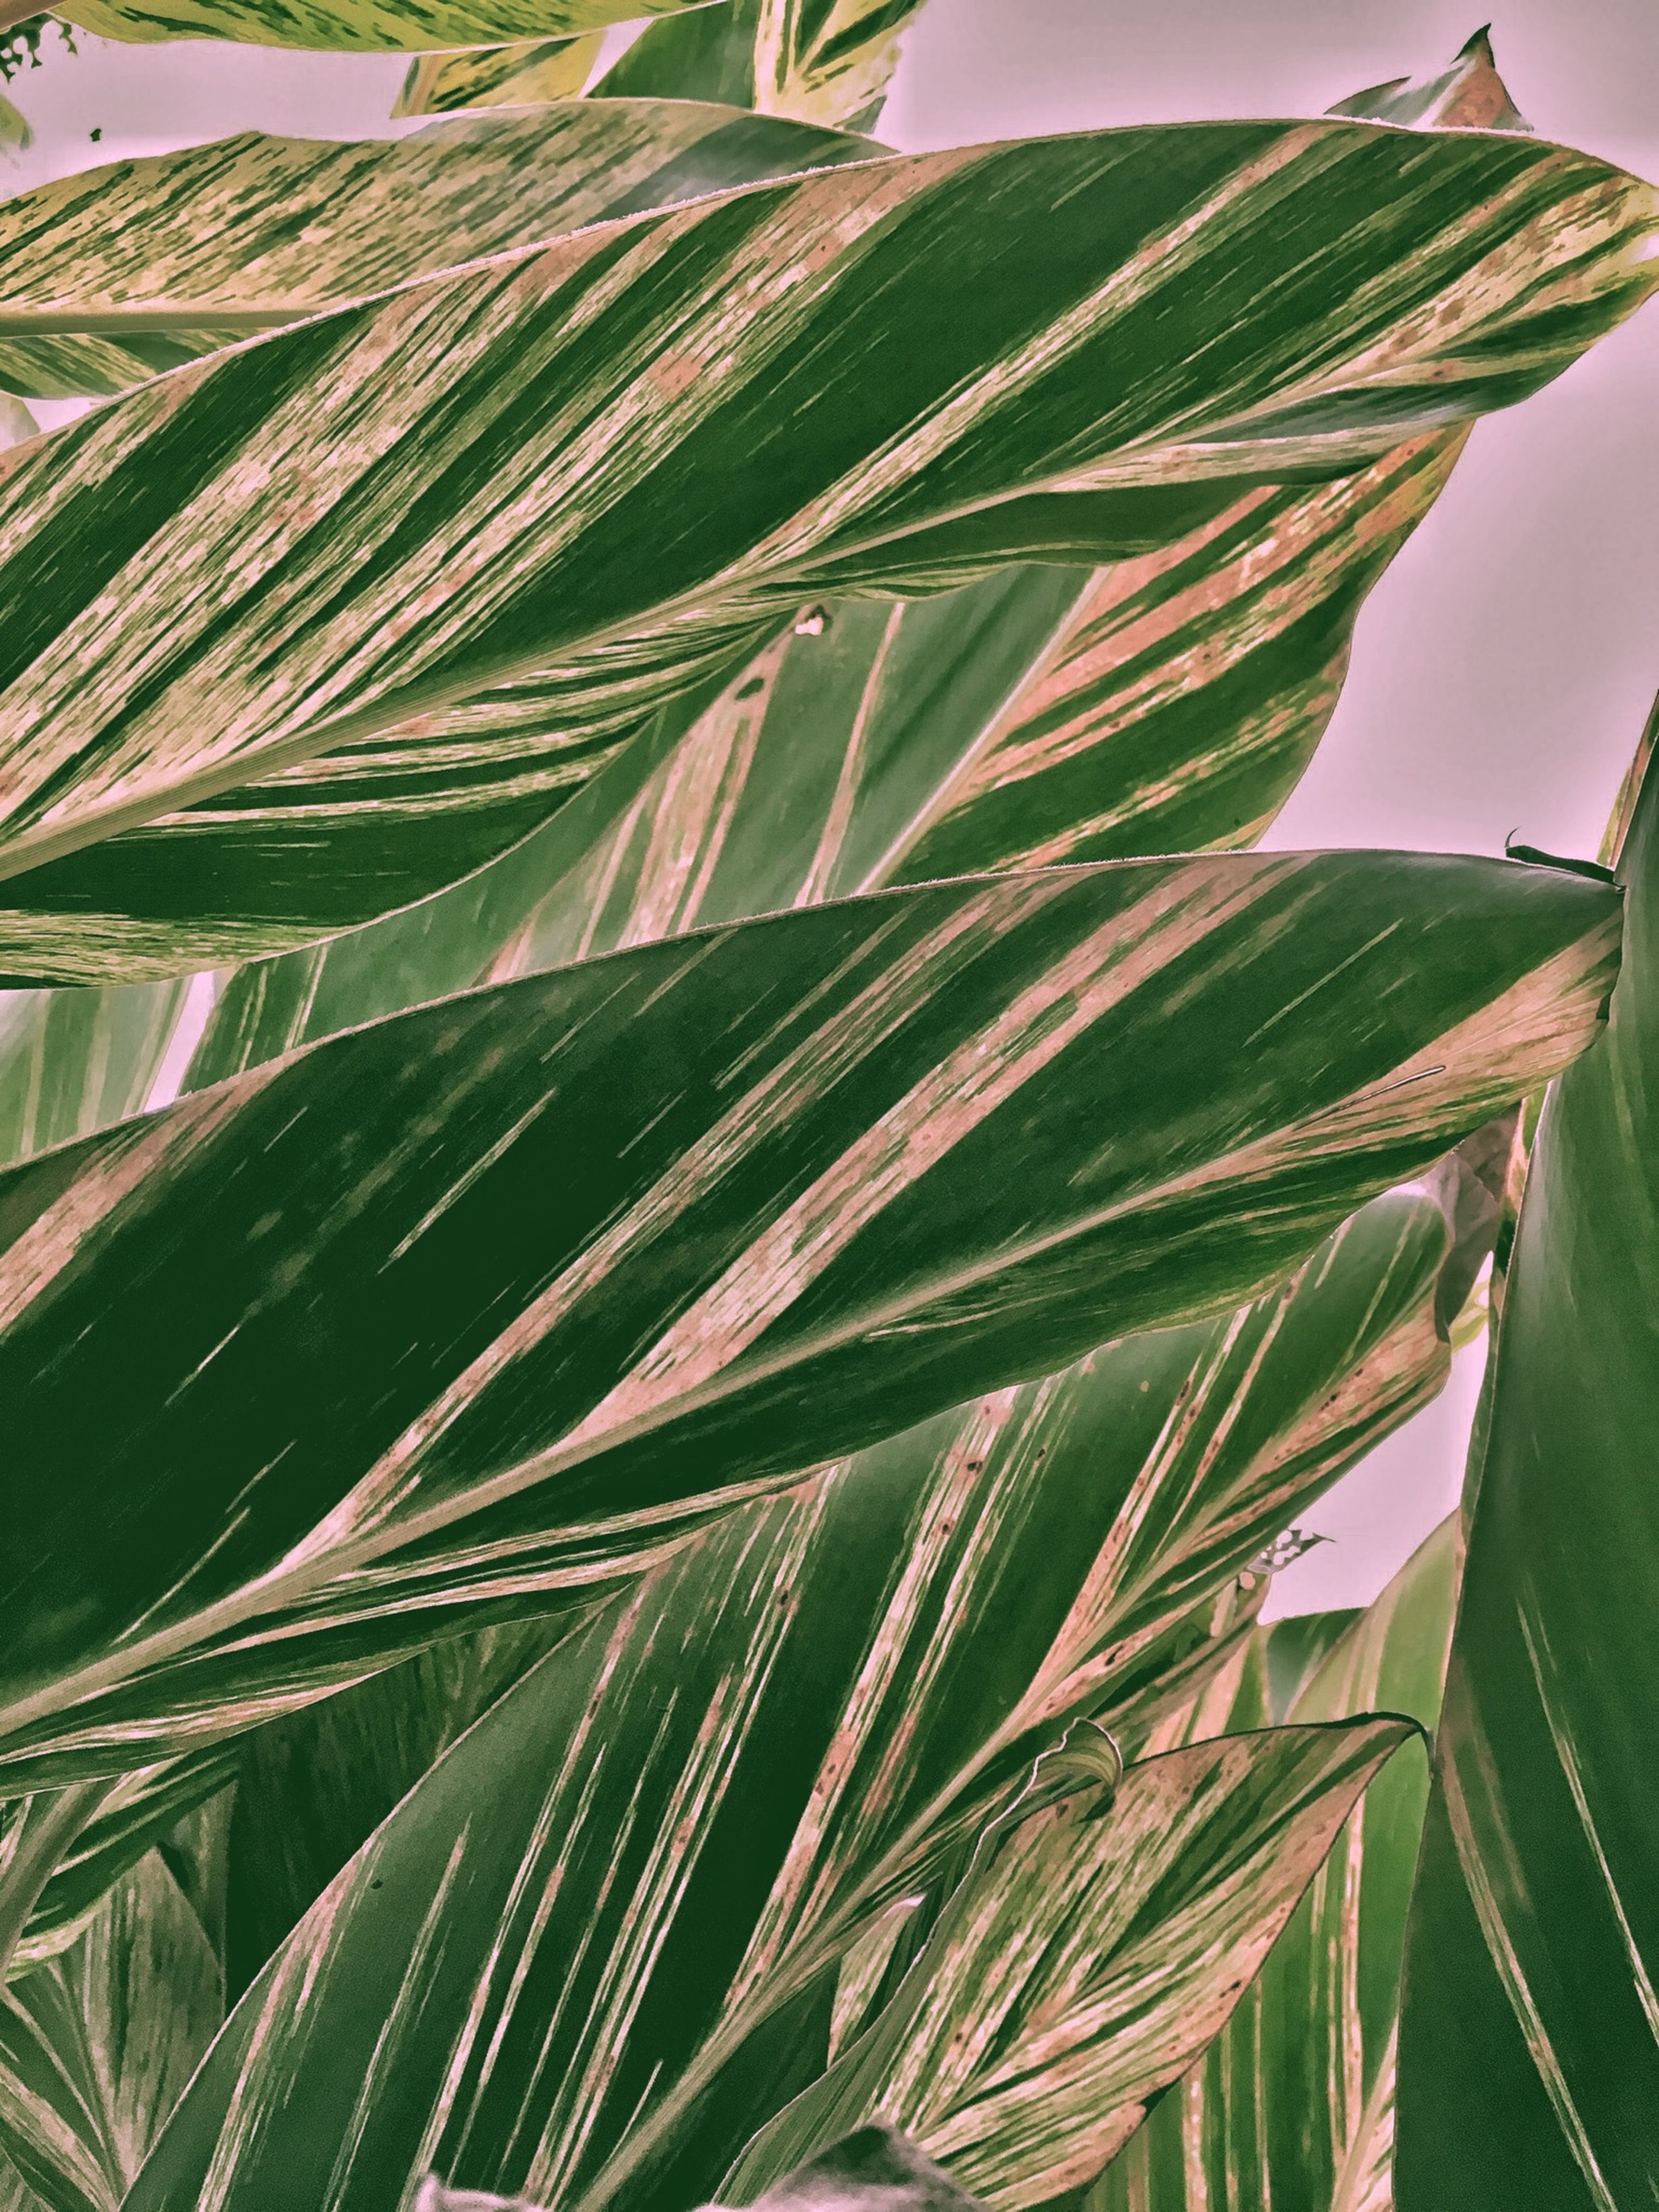 leaf, growth, green color, plant, nature, palm tree, beauty in nature, close-up, green, agriculture, tranquility, palm leaf, leaves, day, outdoors, natural pattern, freshness, growing, no people, leaf vein